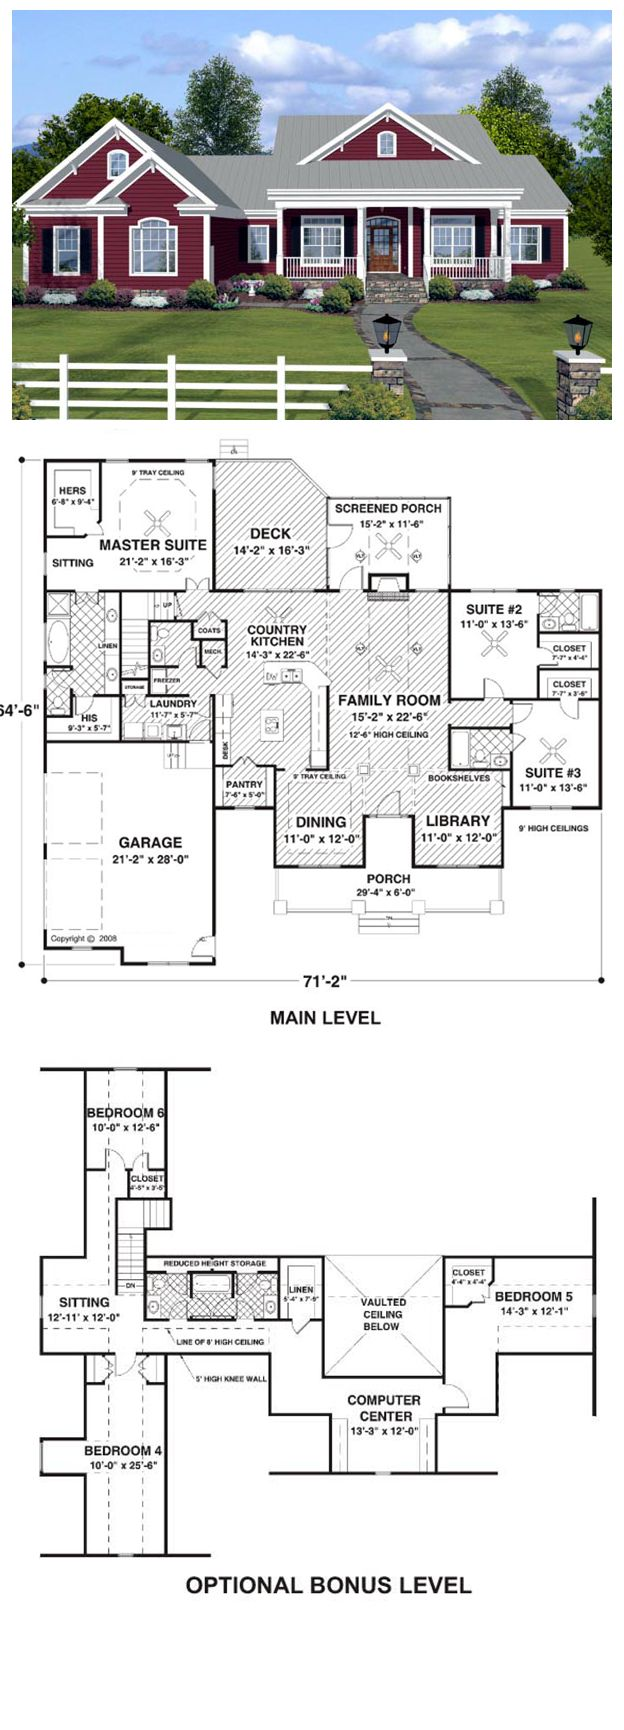 Ranch Style House Plan 74834 With 3 Bed 4 Bath 2 Car Garage Ranch Style House Plans Ranch House Plan Ranch Style Homes